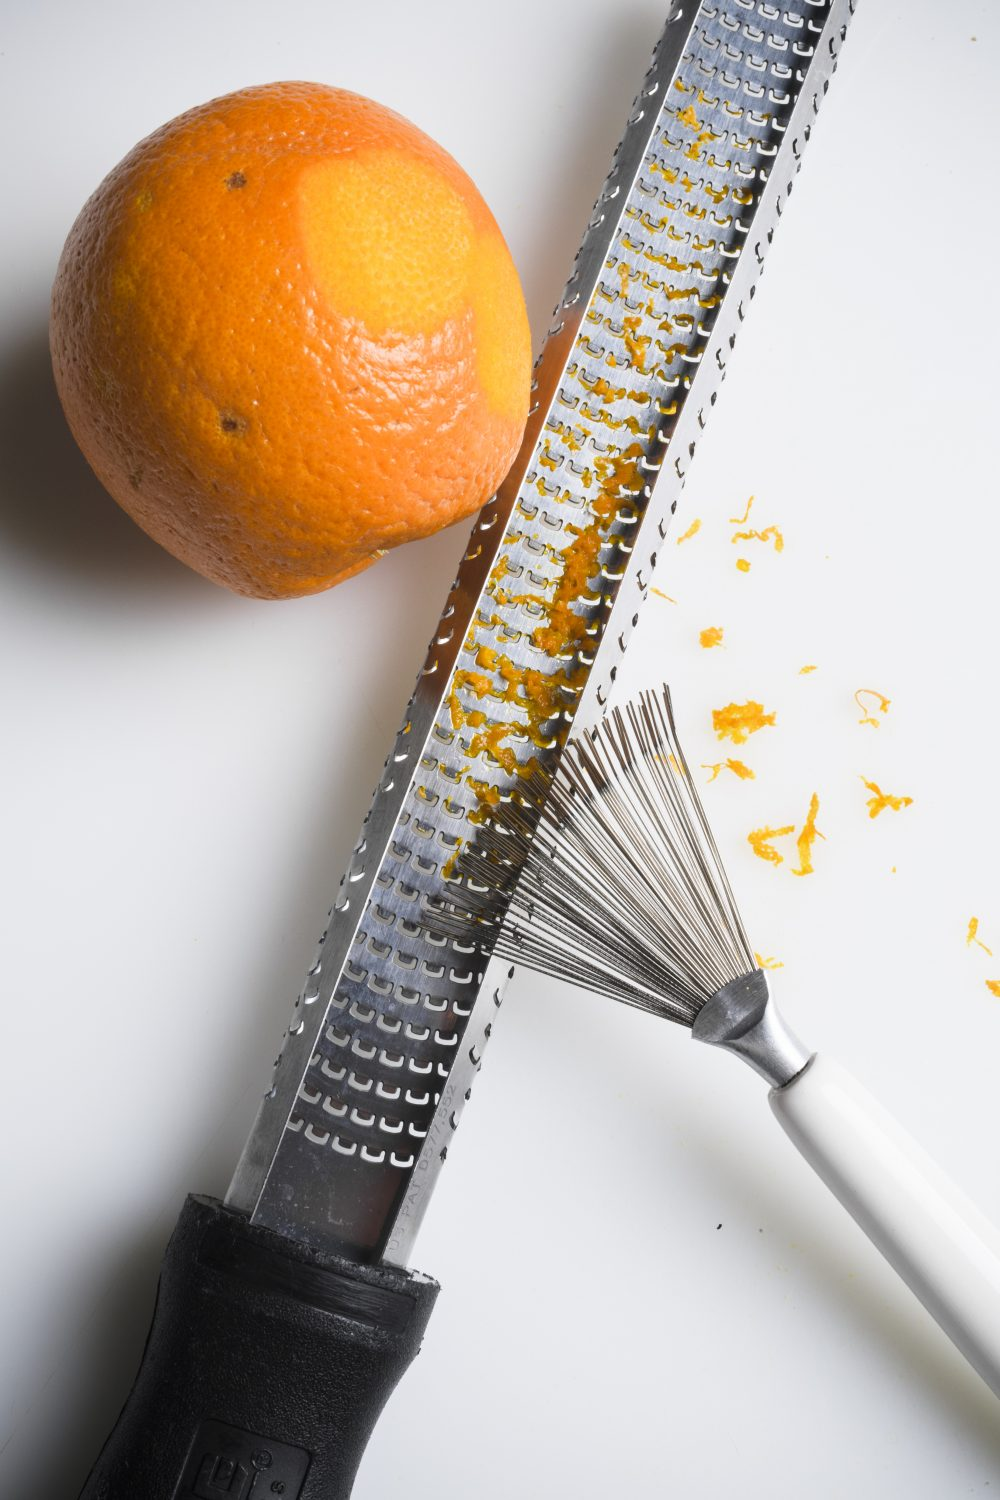 No more snags— stainless steel brushes clean graters easily.